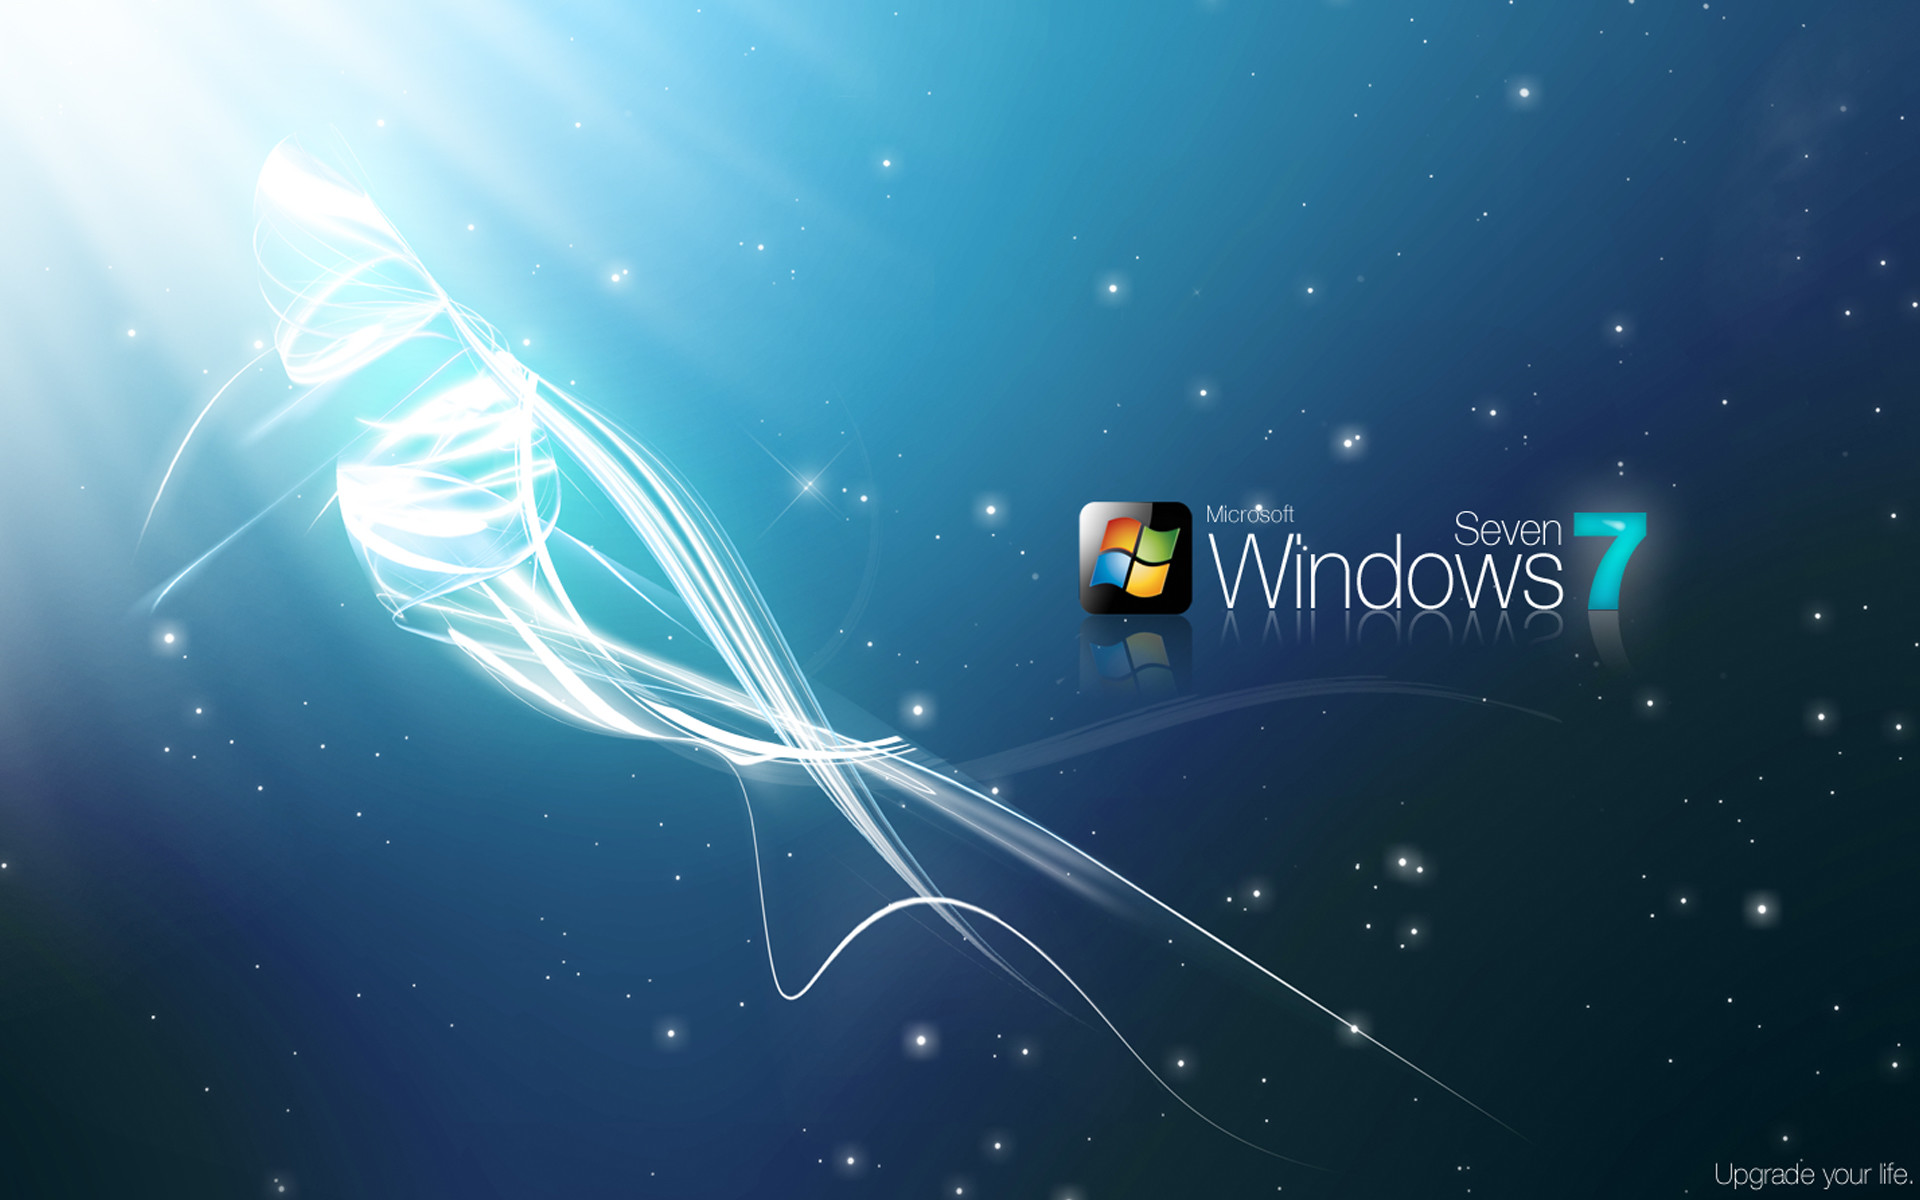 1920x1200 Hd Wallpapers For Windows 7